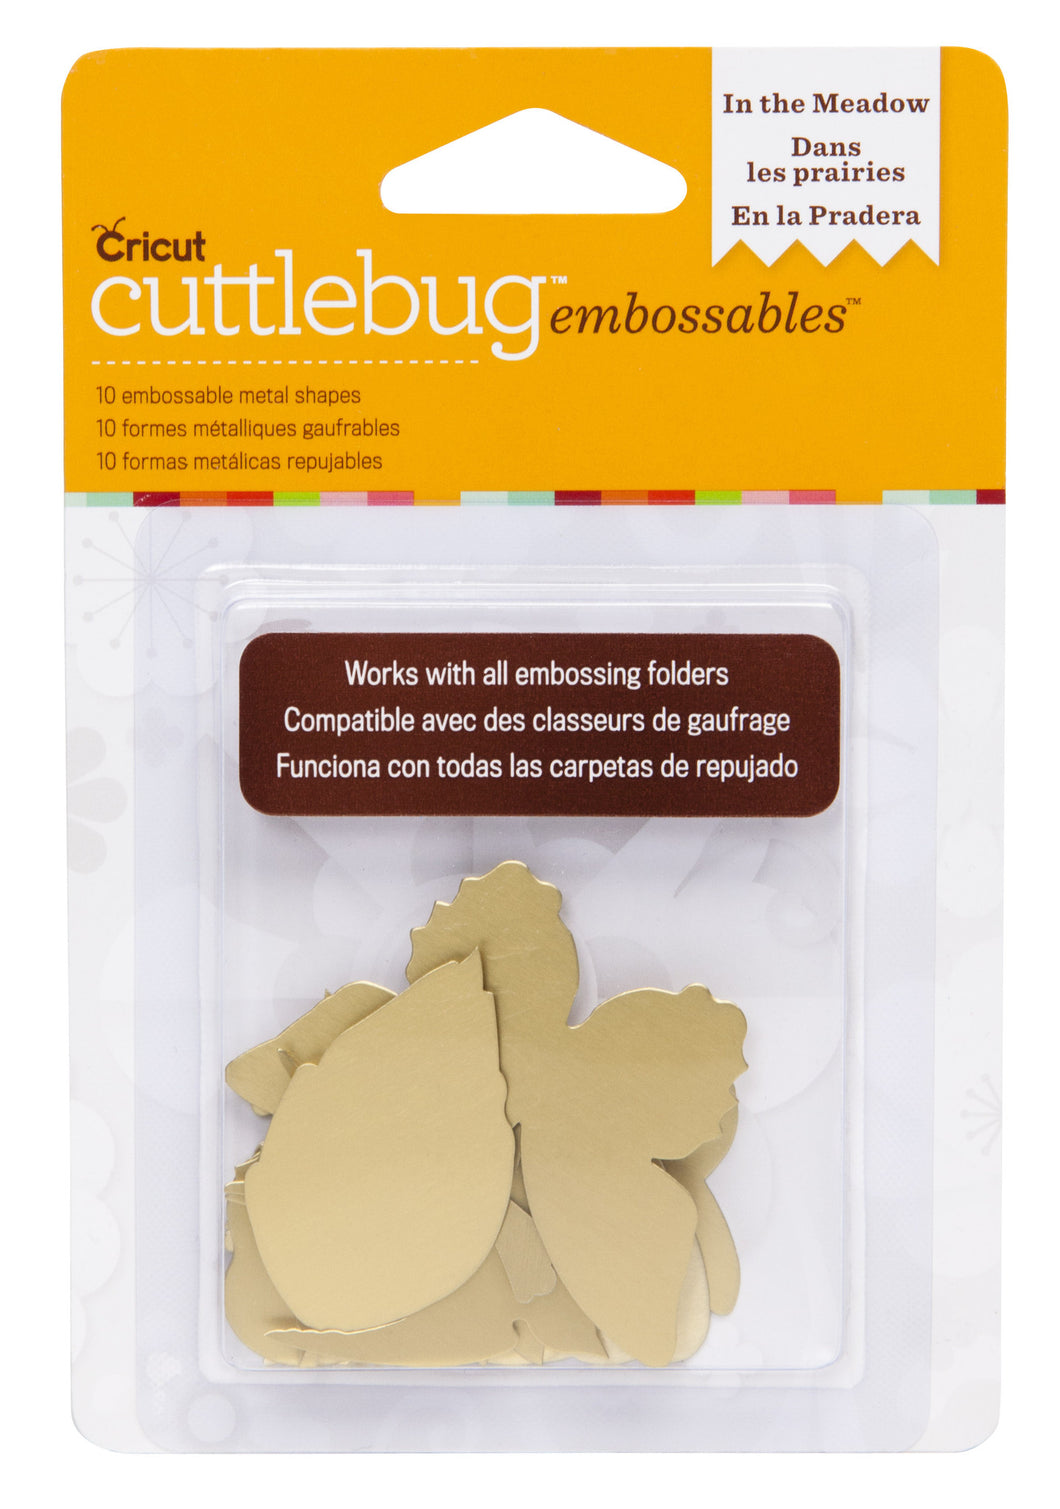 Cuttlebug™ Embossables Gold Shapes, In the Meadow